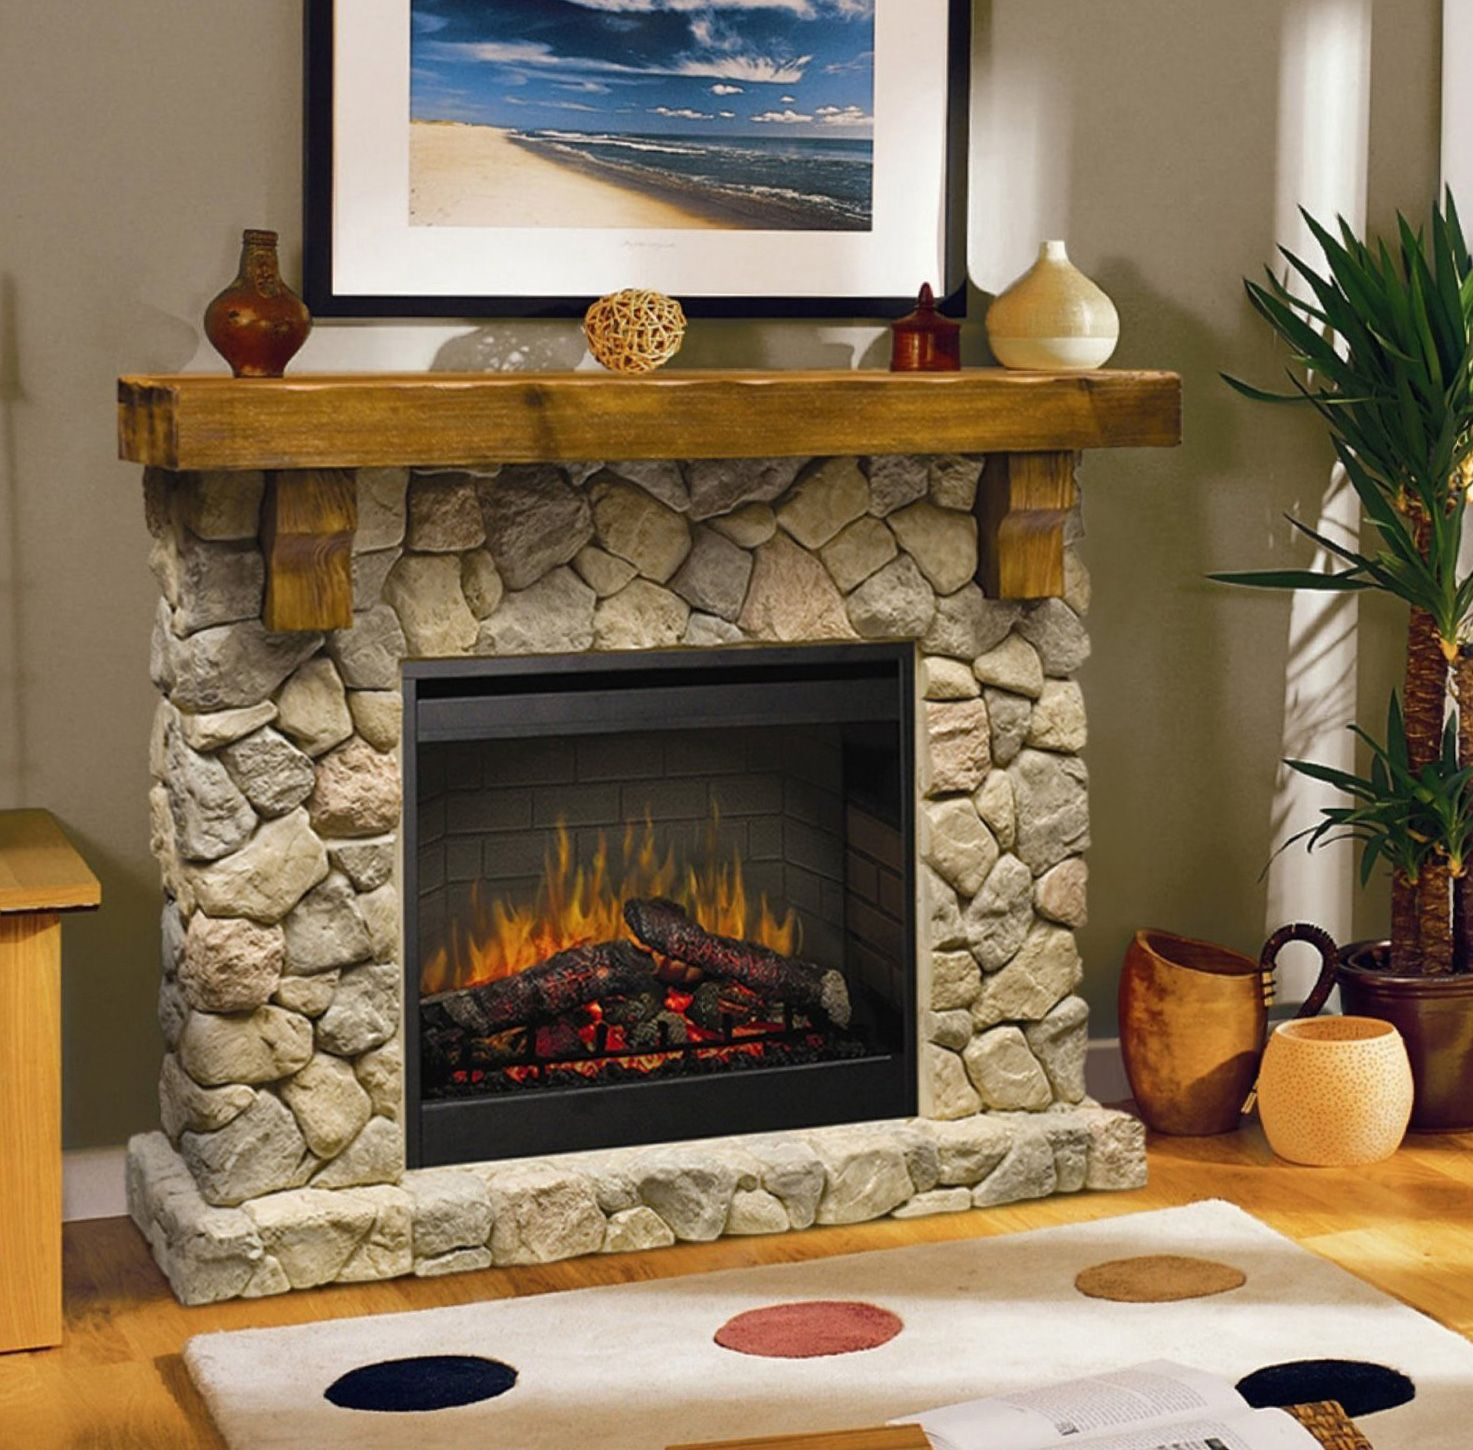 Northern stoneworks designs and manufactures custom stone Fireplace surround ideas